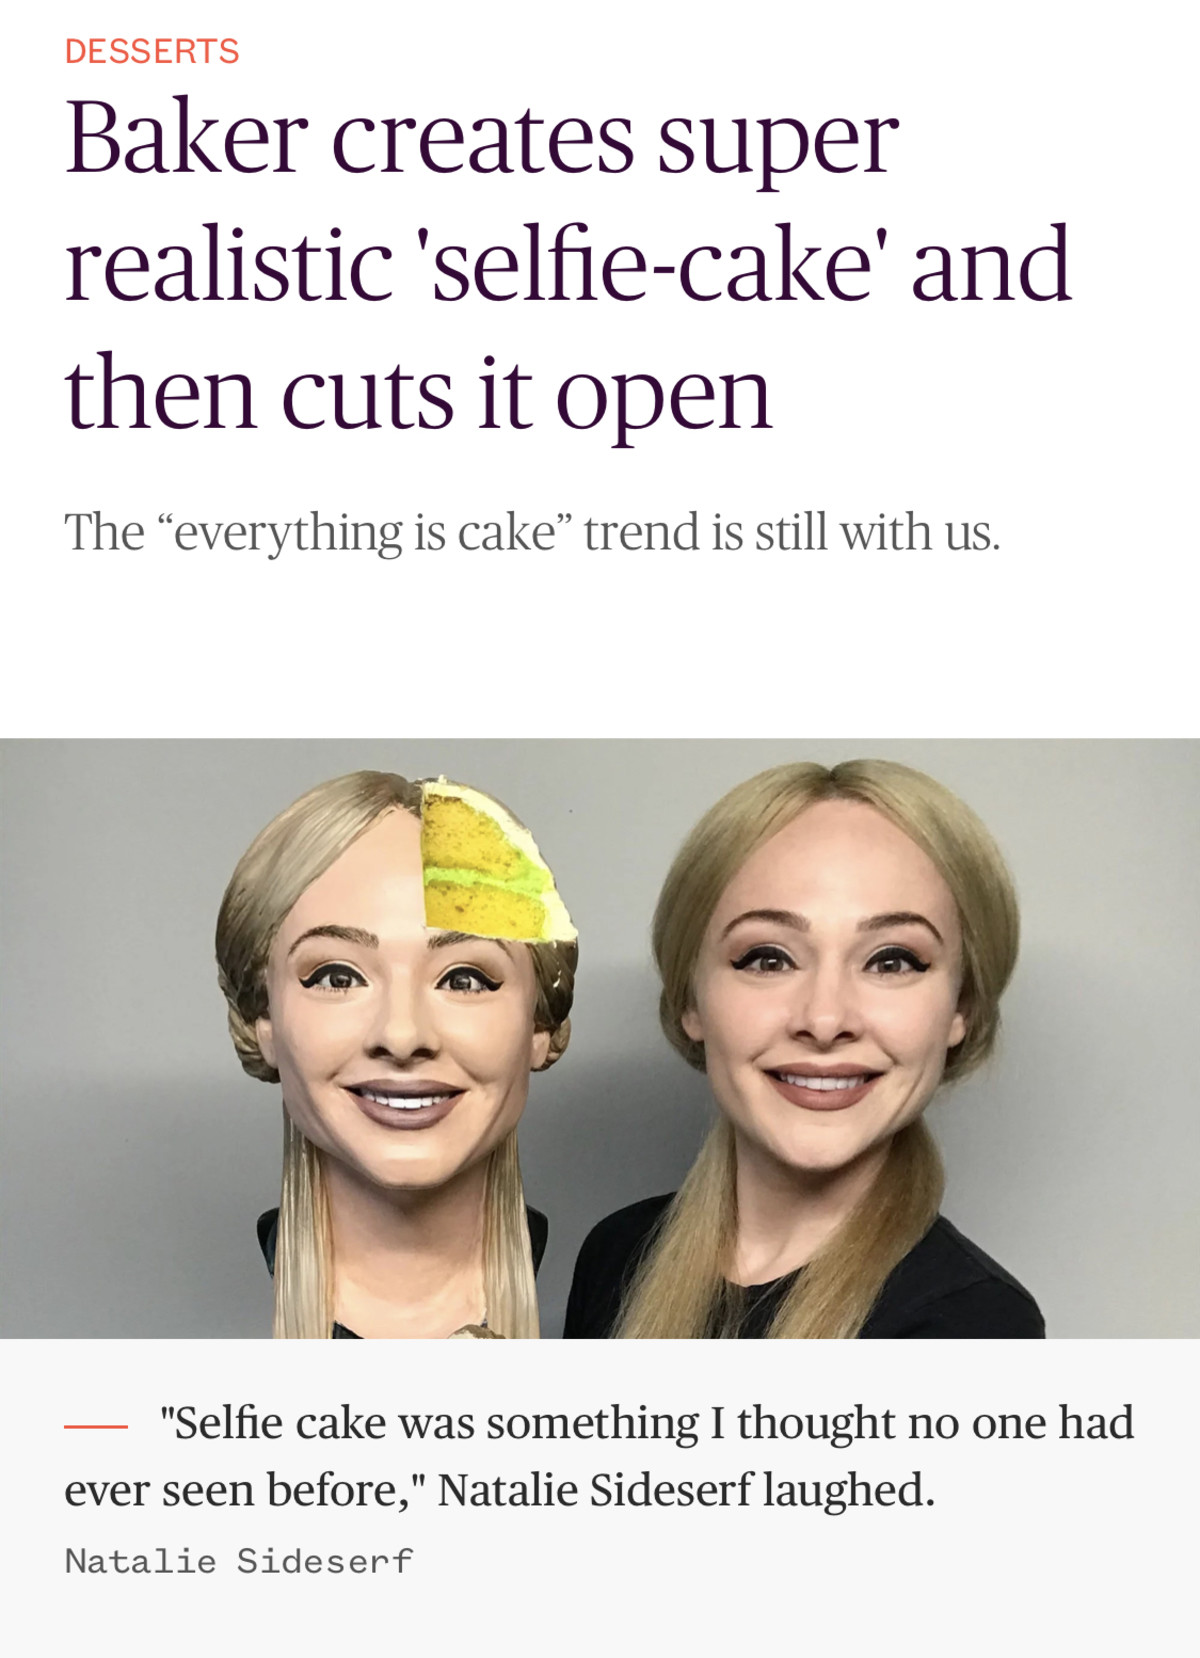 wild contraceptive kind Turtle. .. Her face looks fake enough that it is easy to reproduce as cake. uncanny valley.